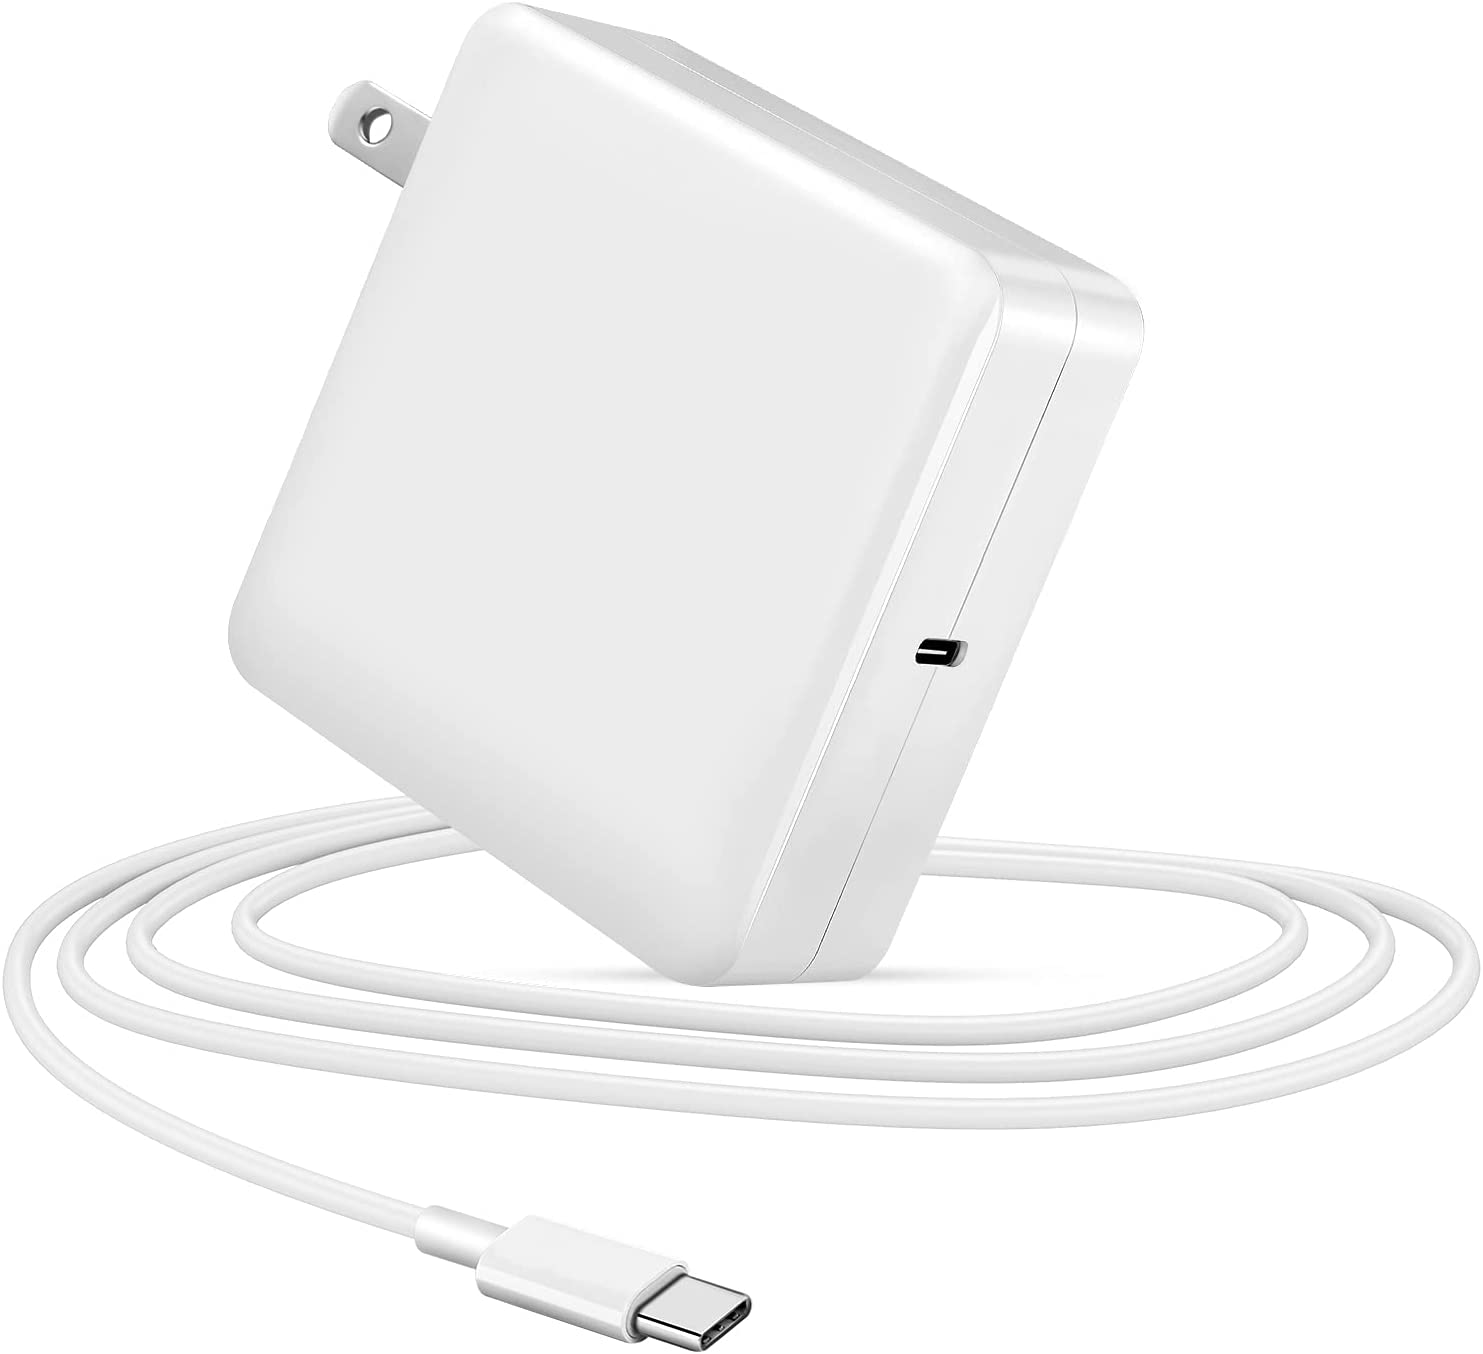 96W USB-C 2021 Nippon regular agency Mac Book Charger with inch Pro Compatible 16